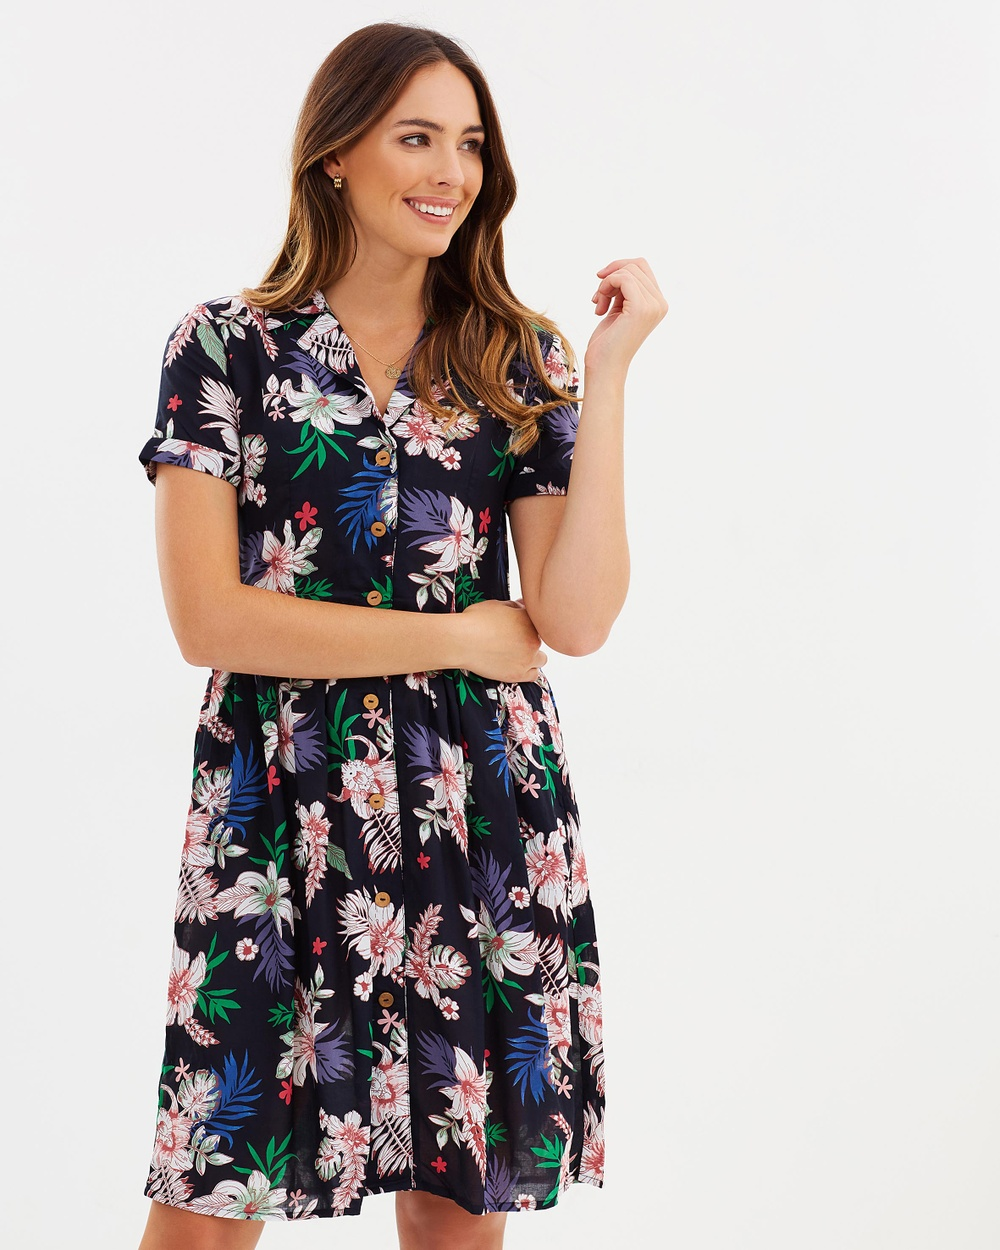 M.N.G Lali Dress Printed Dresses Navy Lali Dress